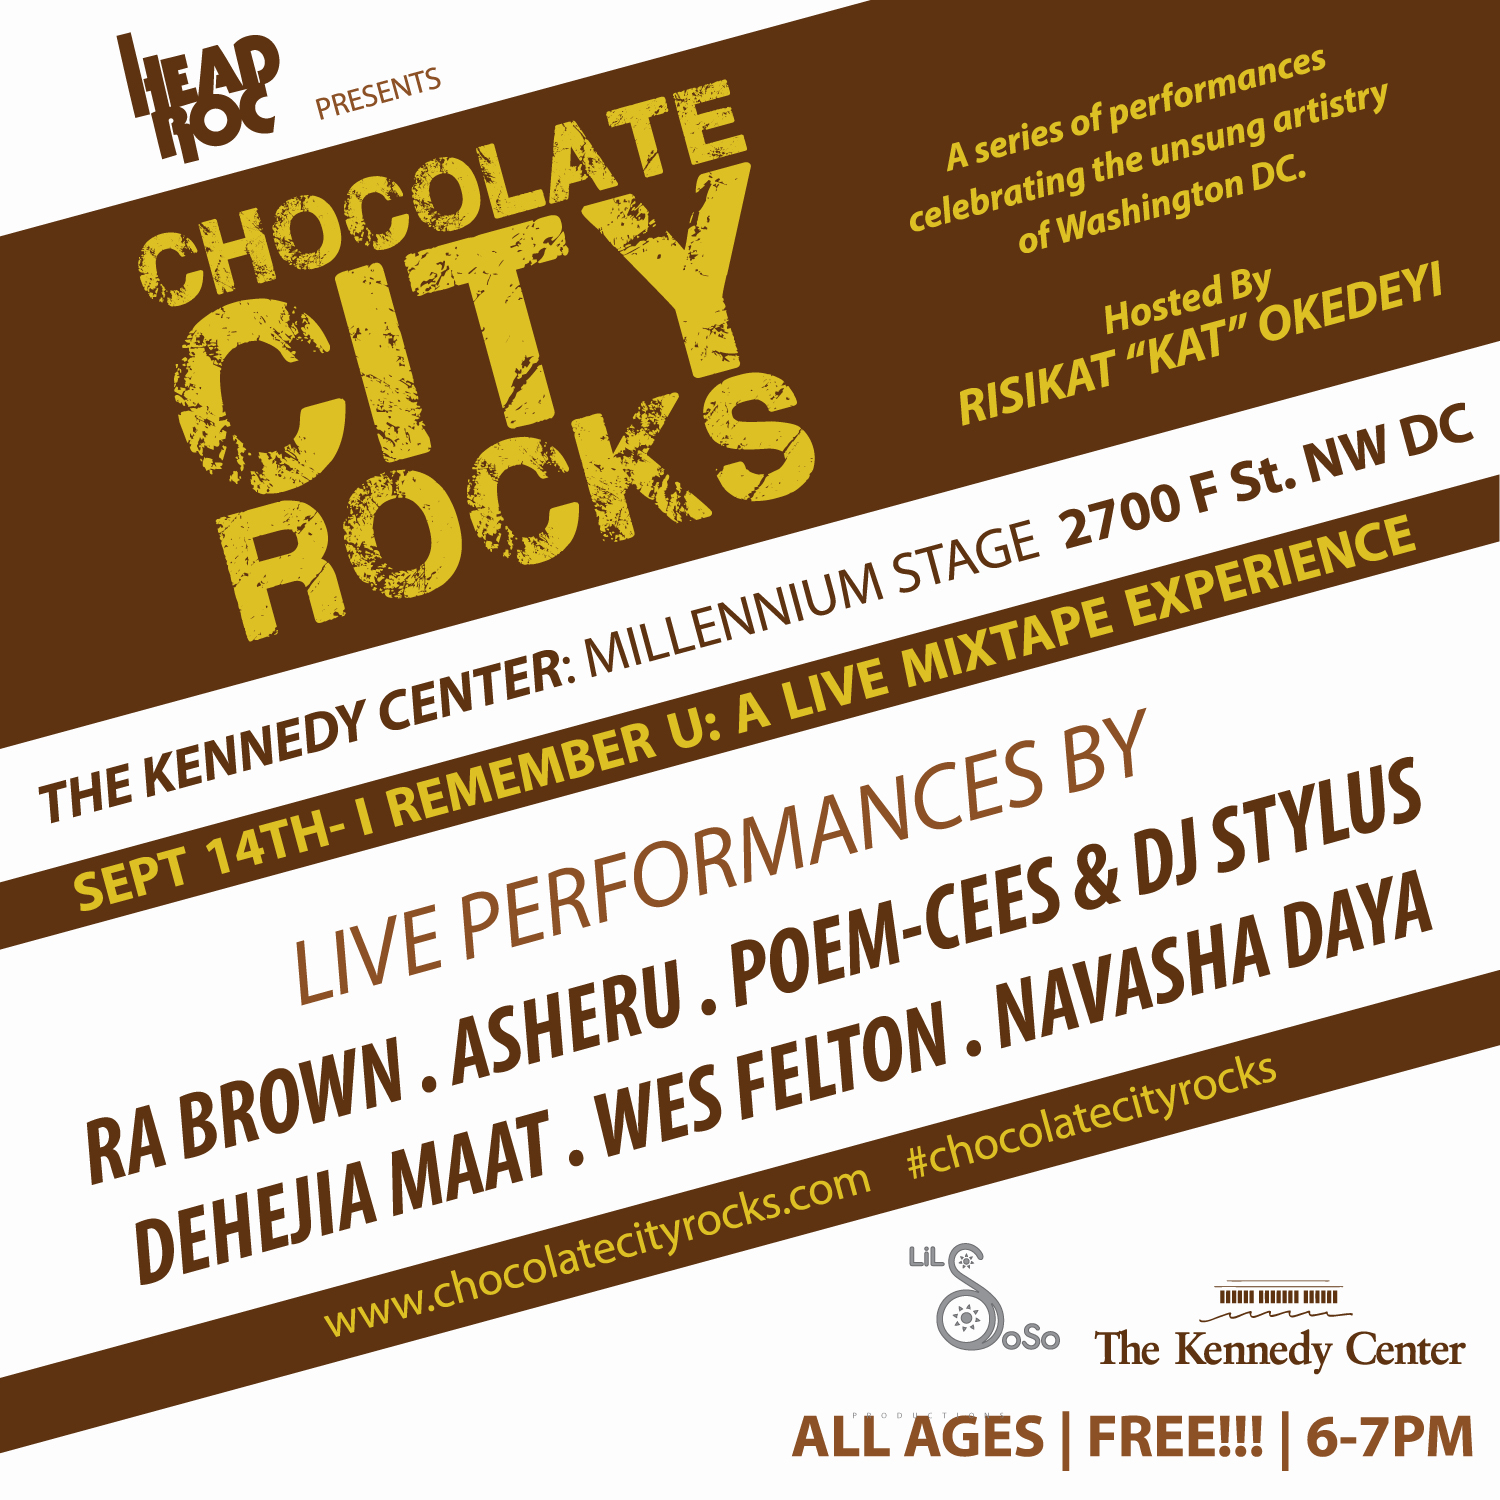 Chocolate City Rocks: I Remember U